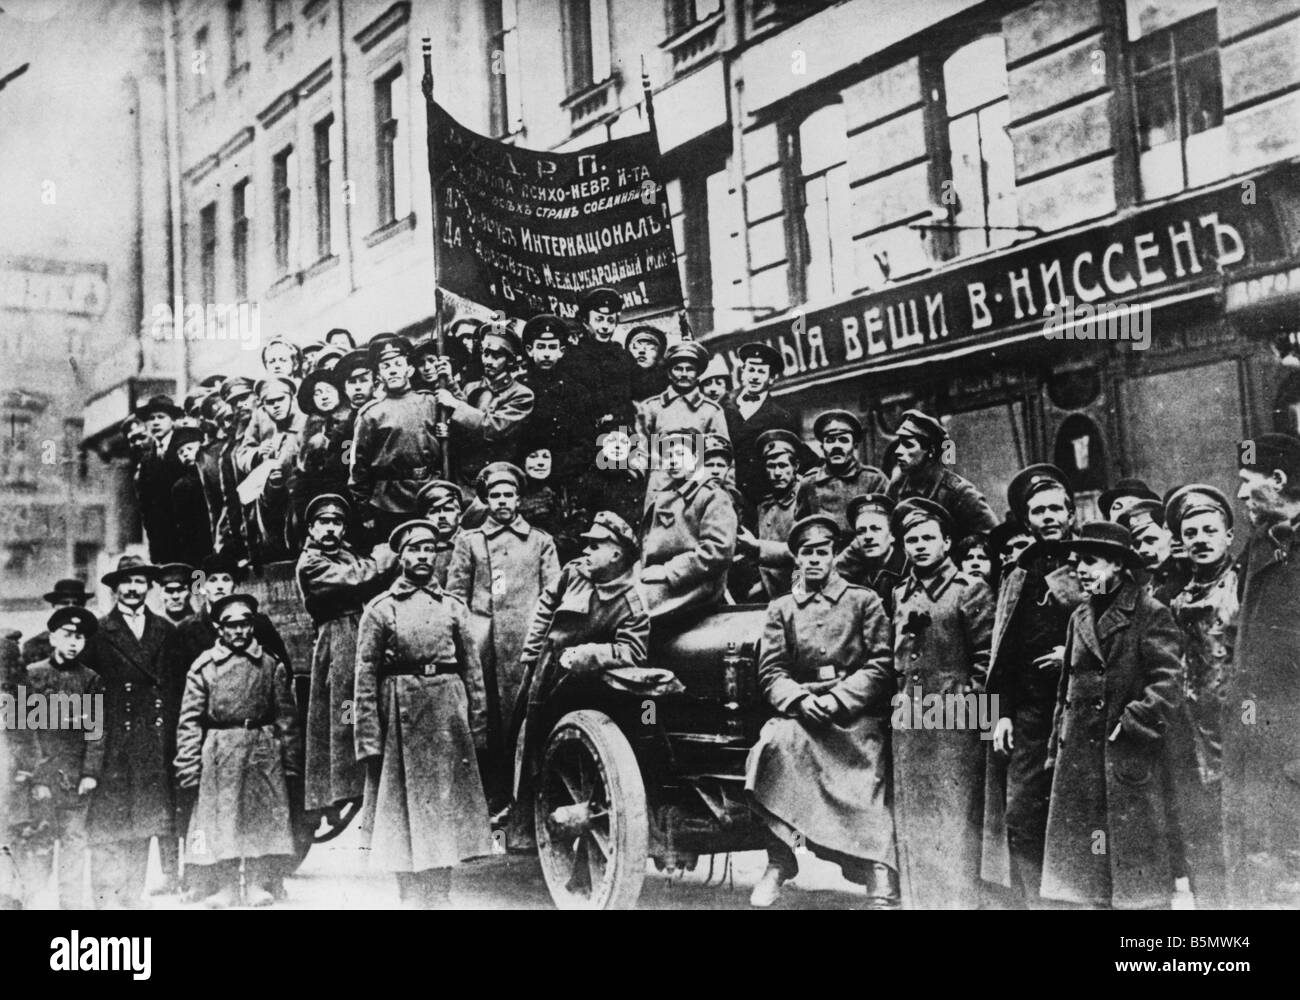 9RD 1917 0 0 A3 1 Demonstration Russia 1917 Russian Revolution 1917 Demonstration Photograph - Stock Image